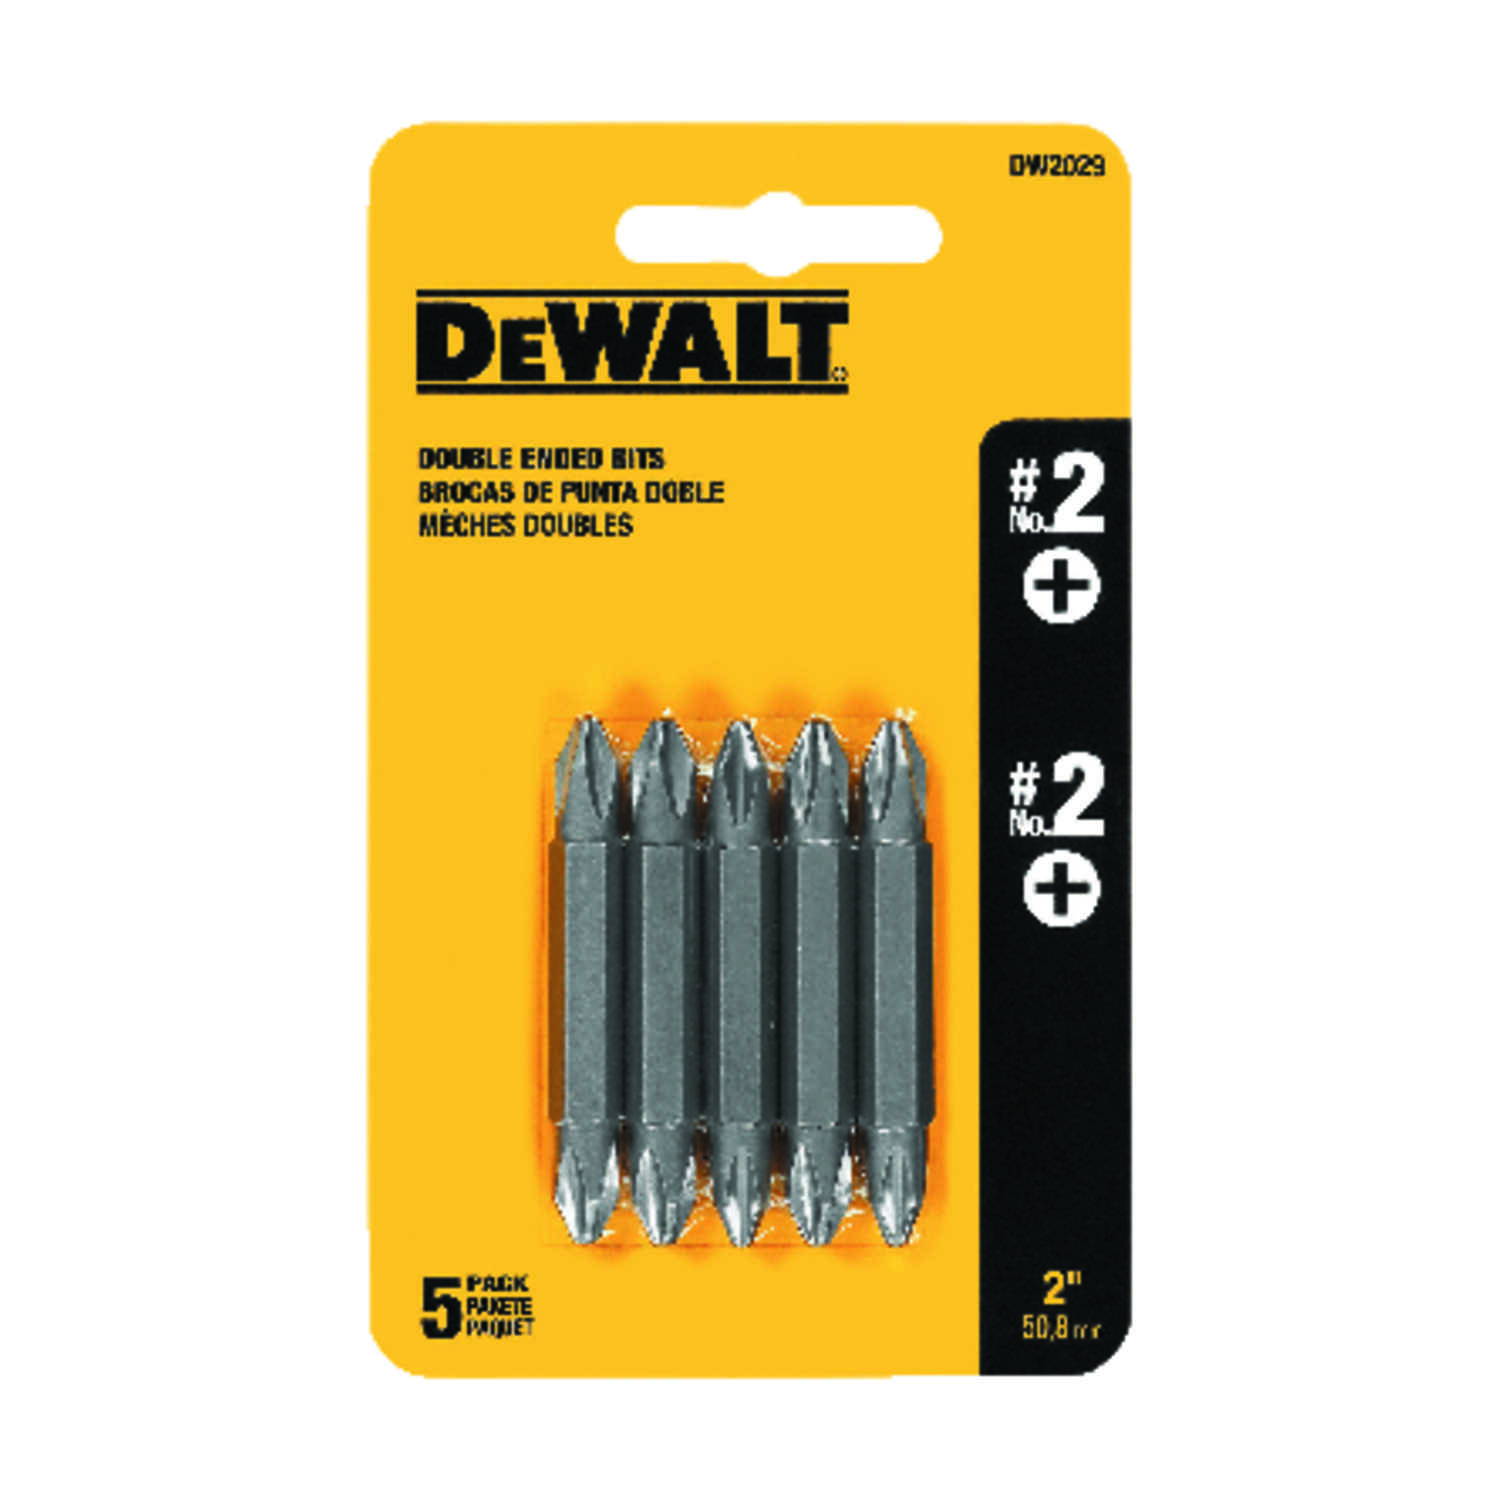 DeWalt  2 in. L Power Screwdriver Bit  Heat-Treated Steel  5 pc.